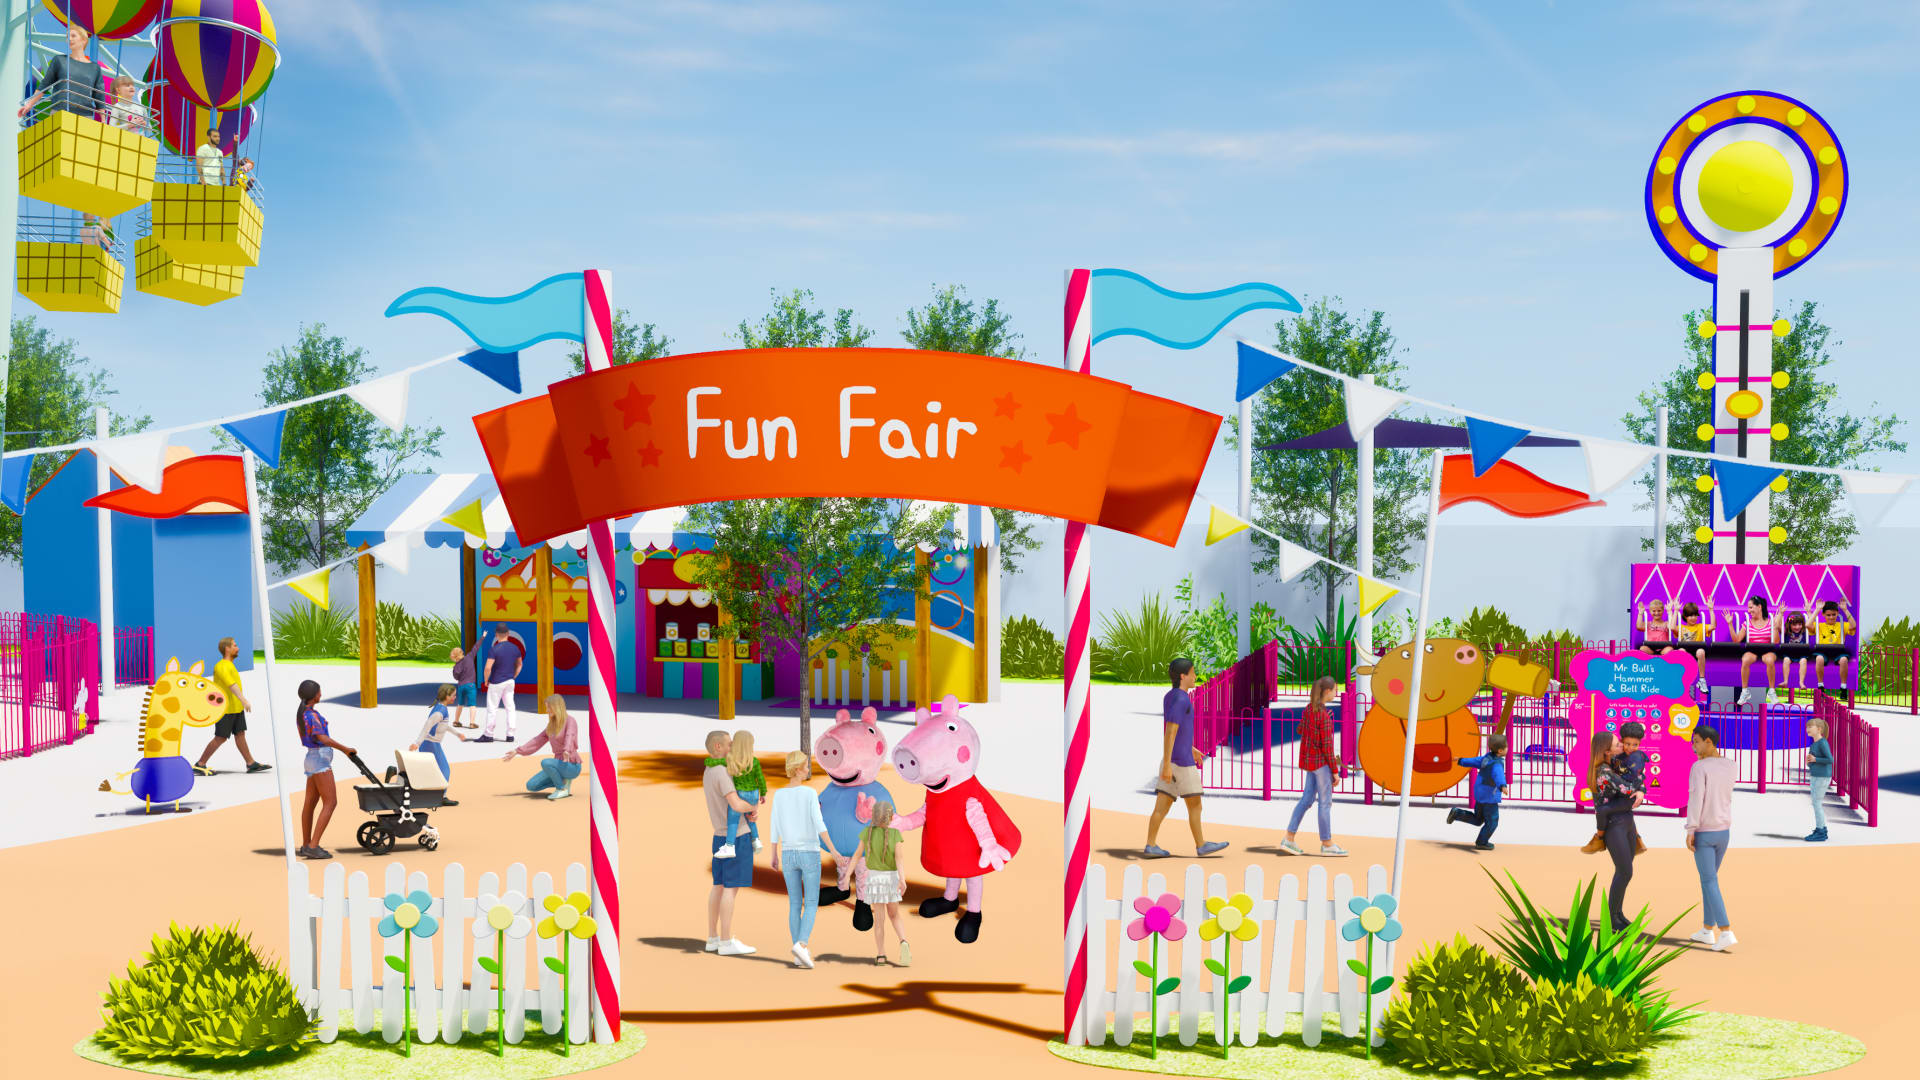 The Peppa Pig theme park is all-new standalone theme park that will feature multiple rides, interactive attractions, themed playscapes and water play areas.